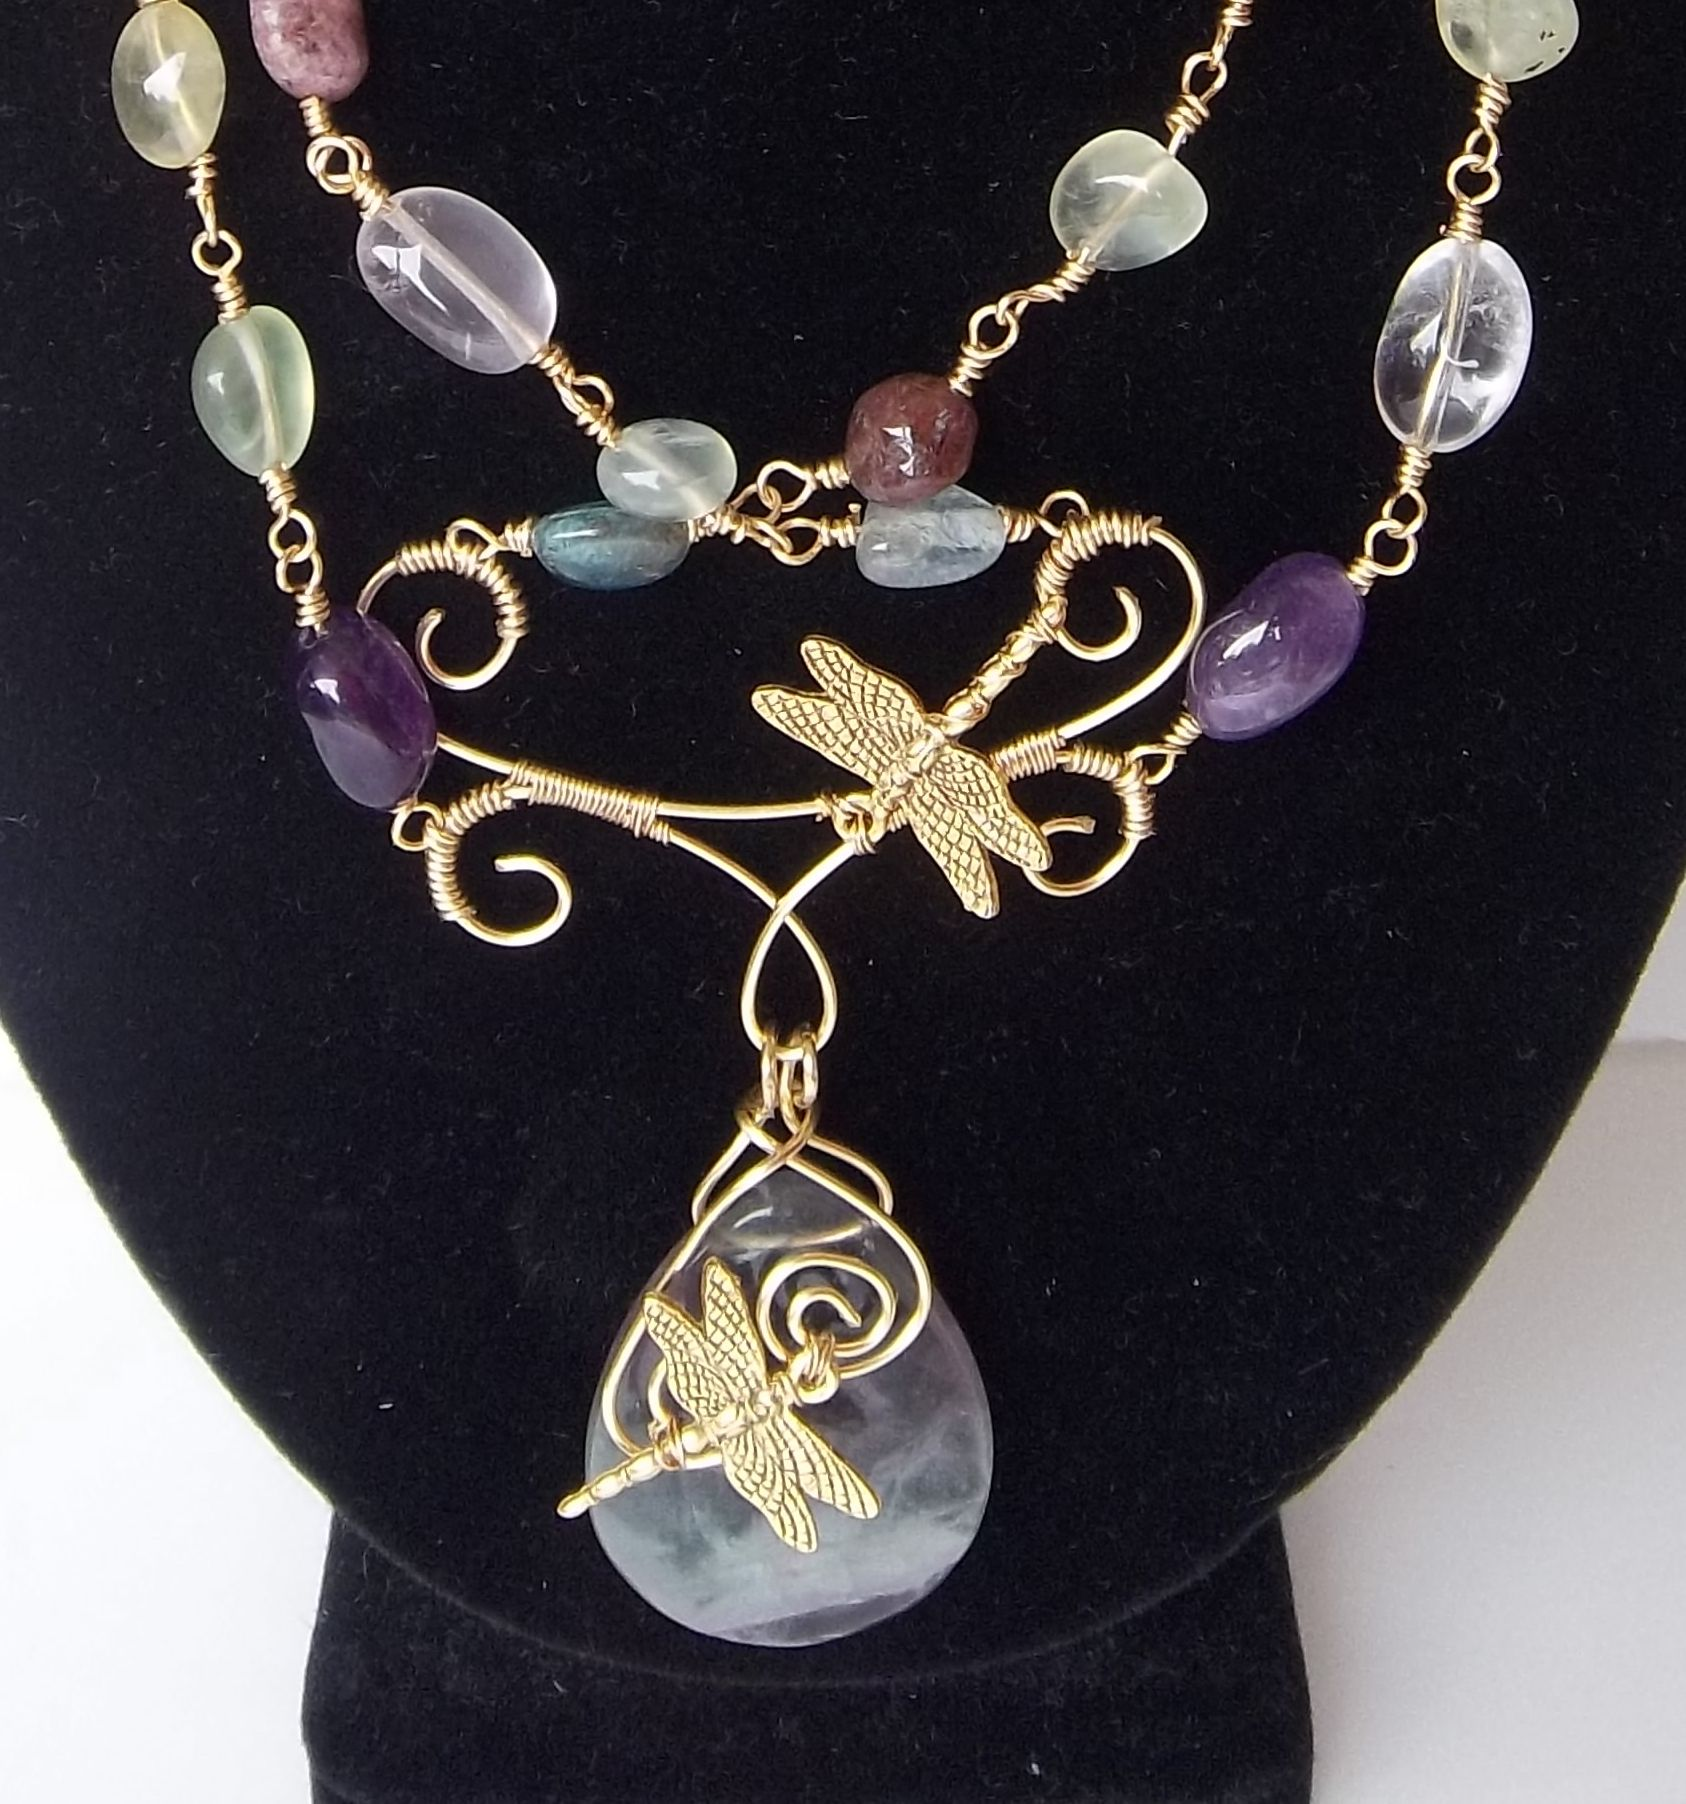 Here be dragonflies...closeup of focal area of the necklace